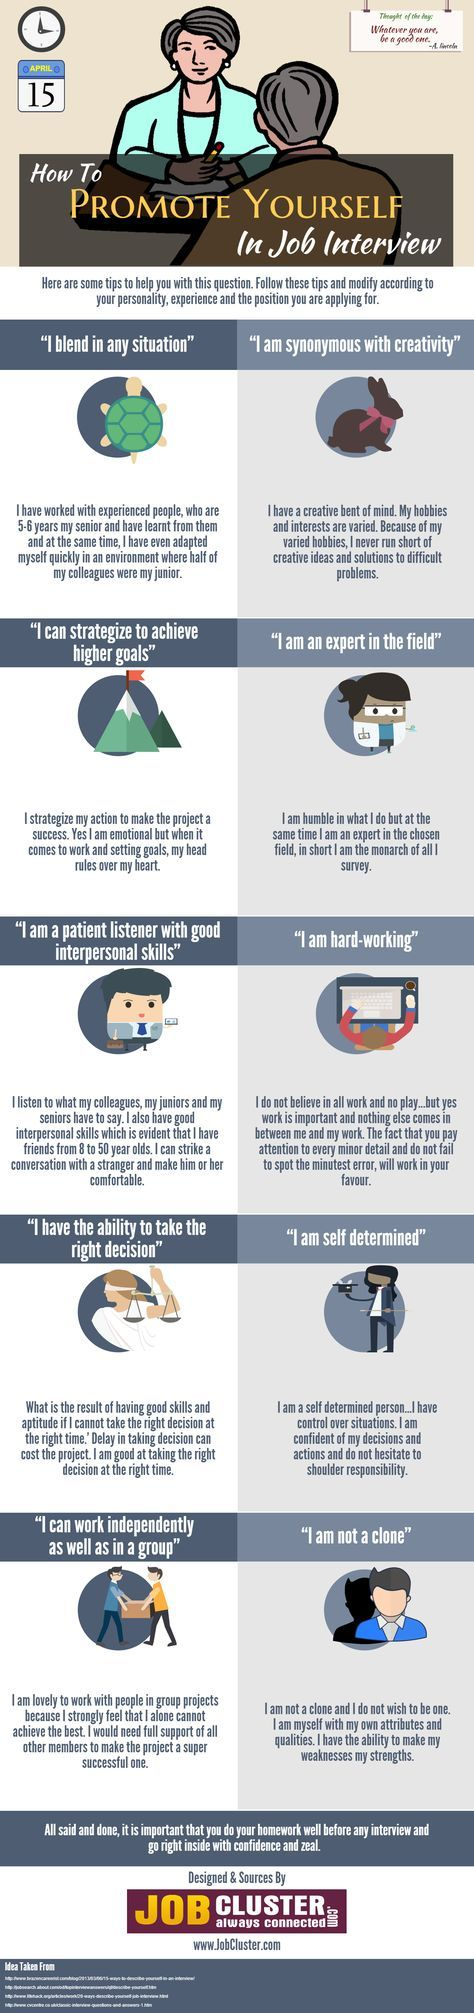 Self Promotion In Job Interviewgraphic